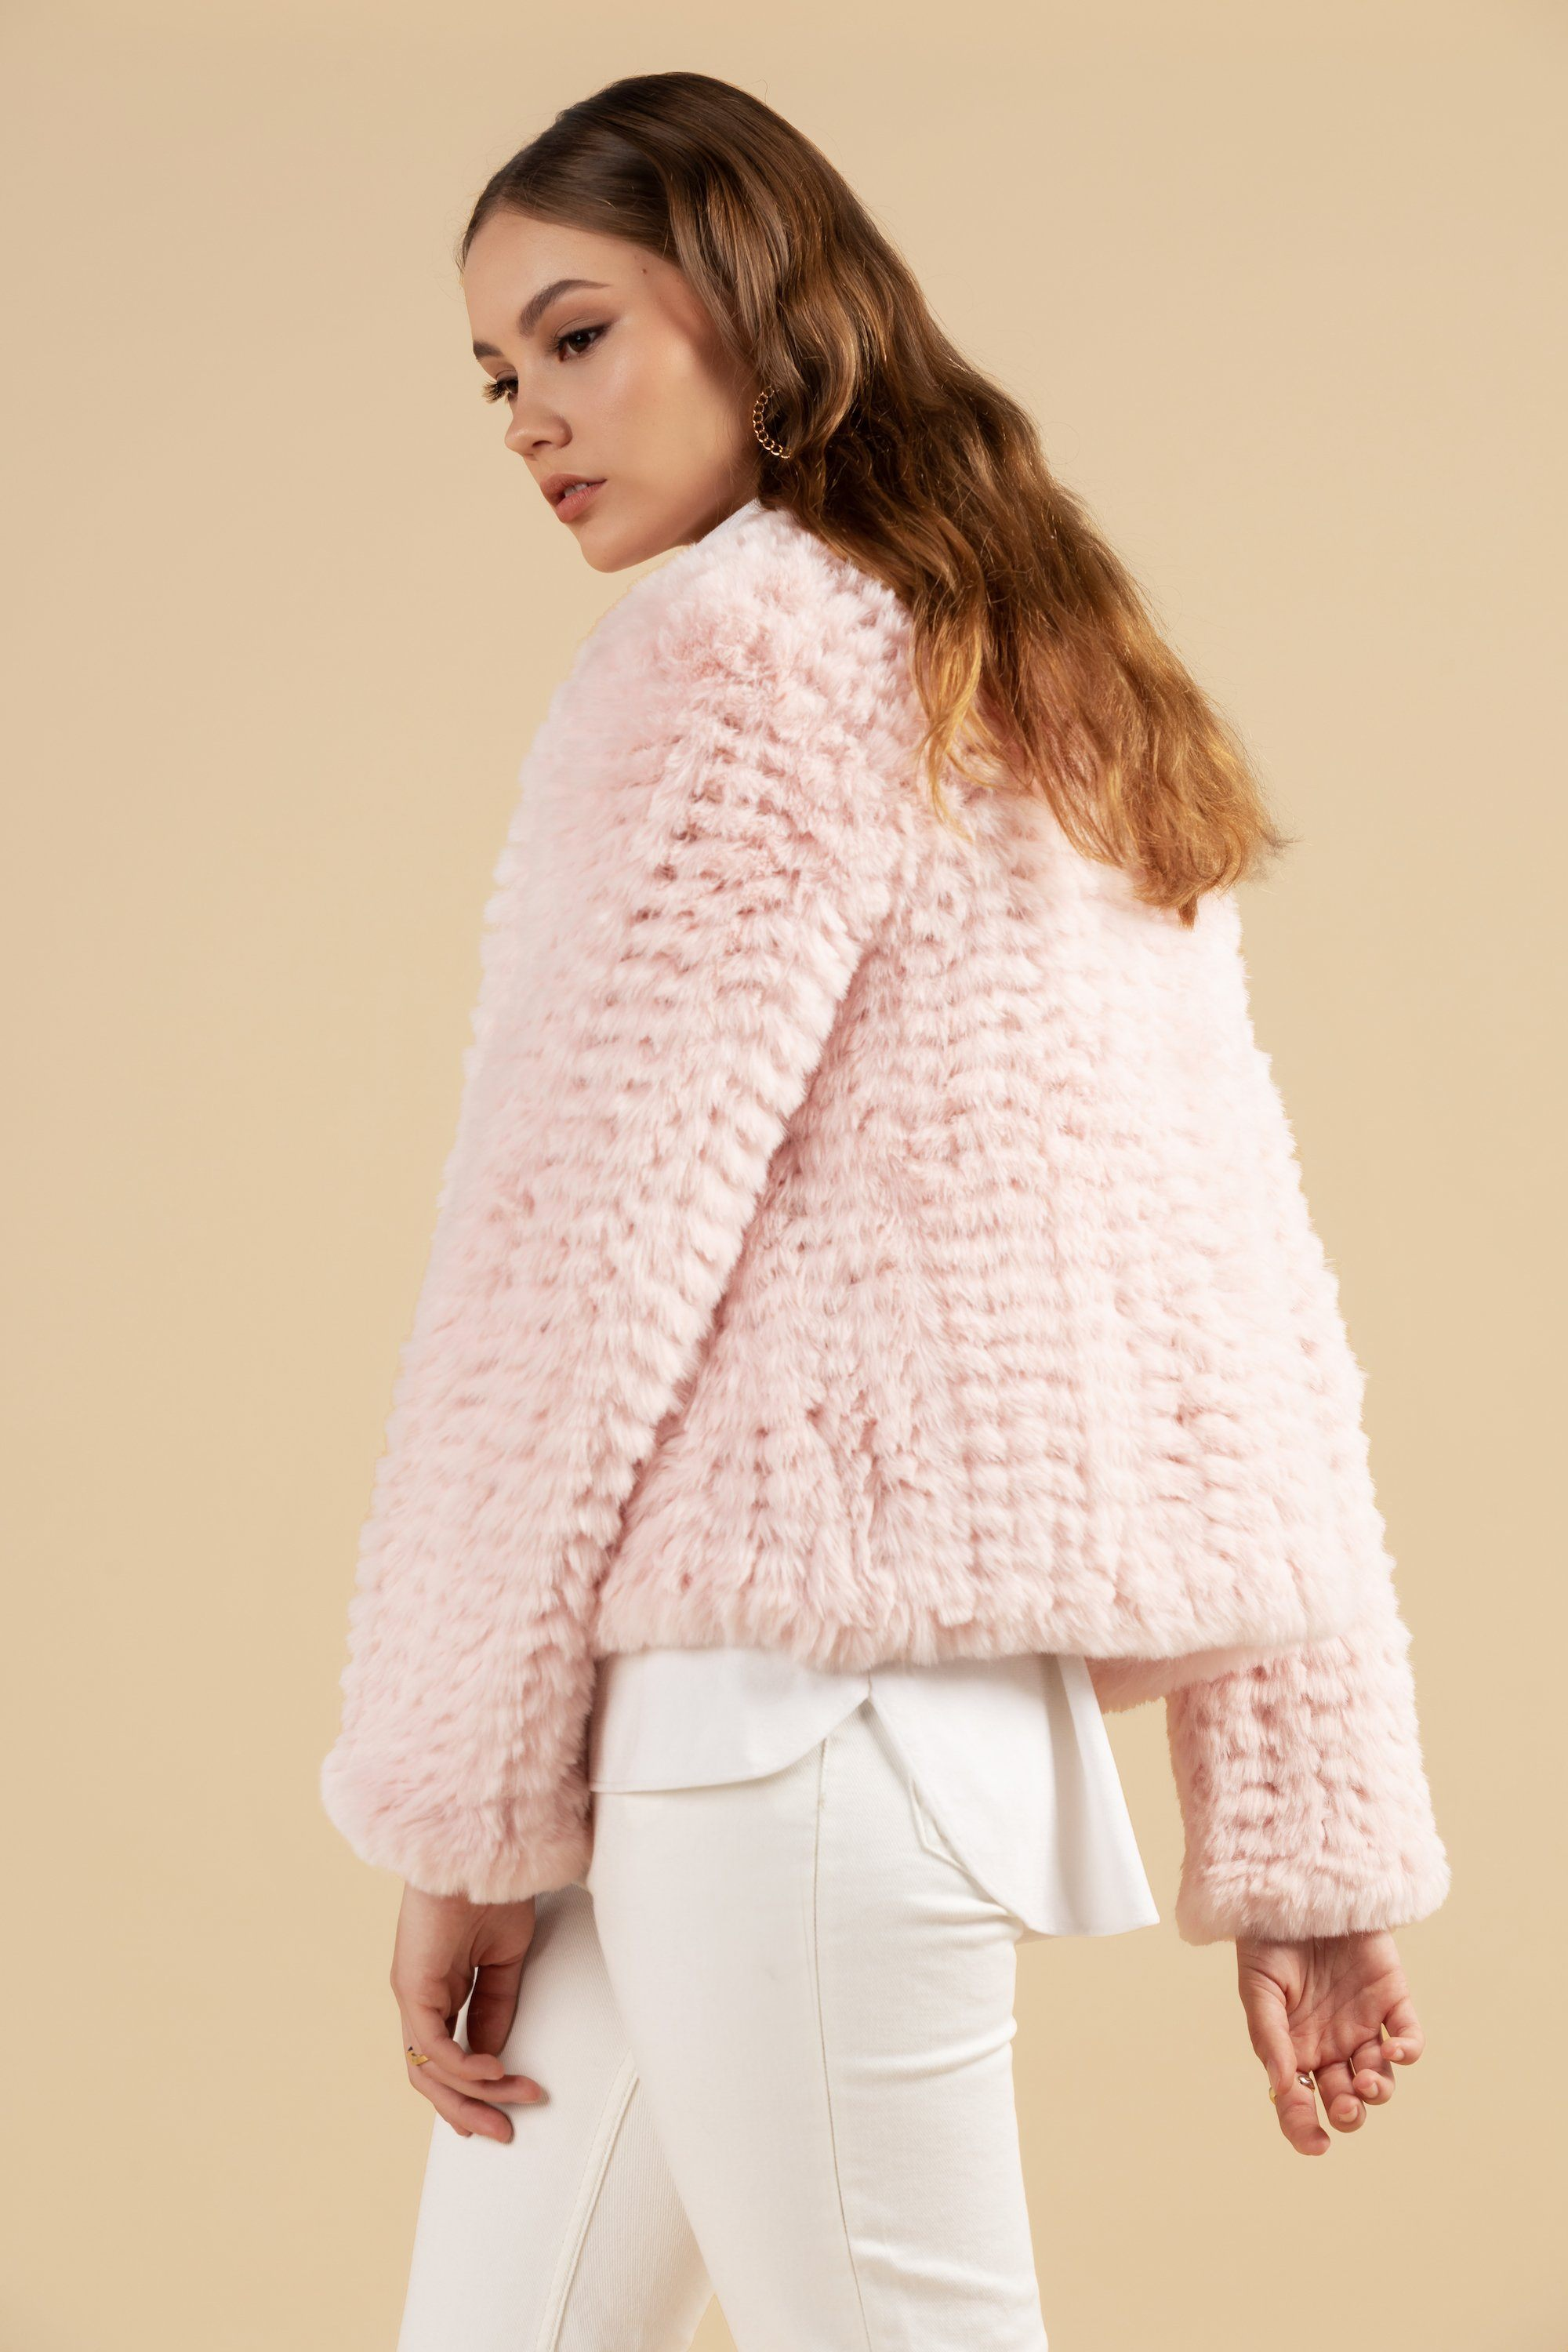 Faux Fur Valencia Blush Jacket